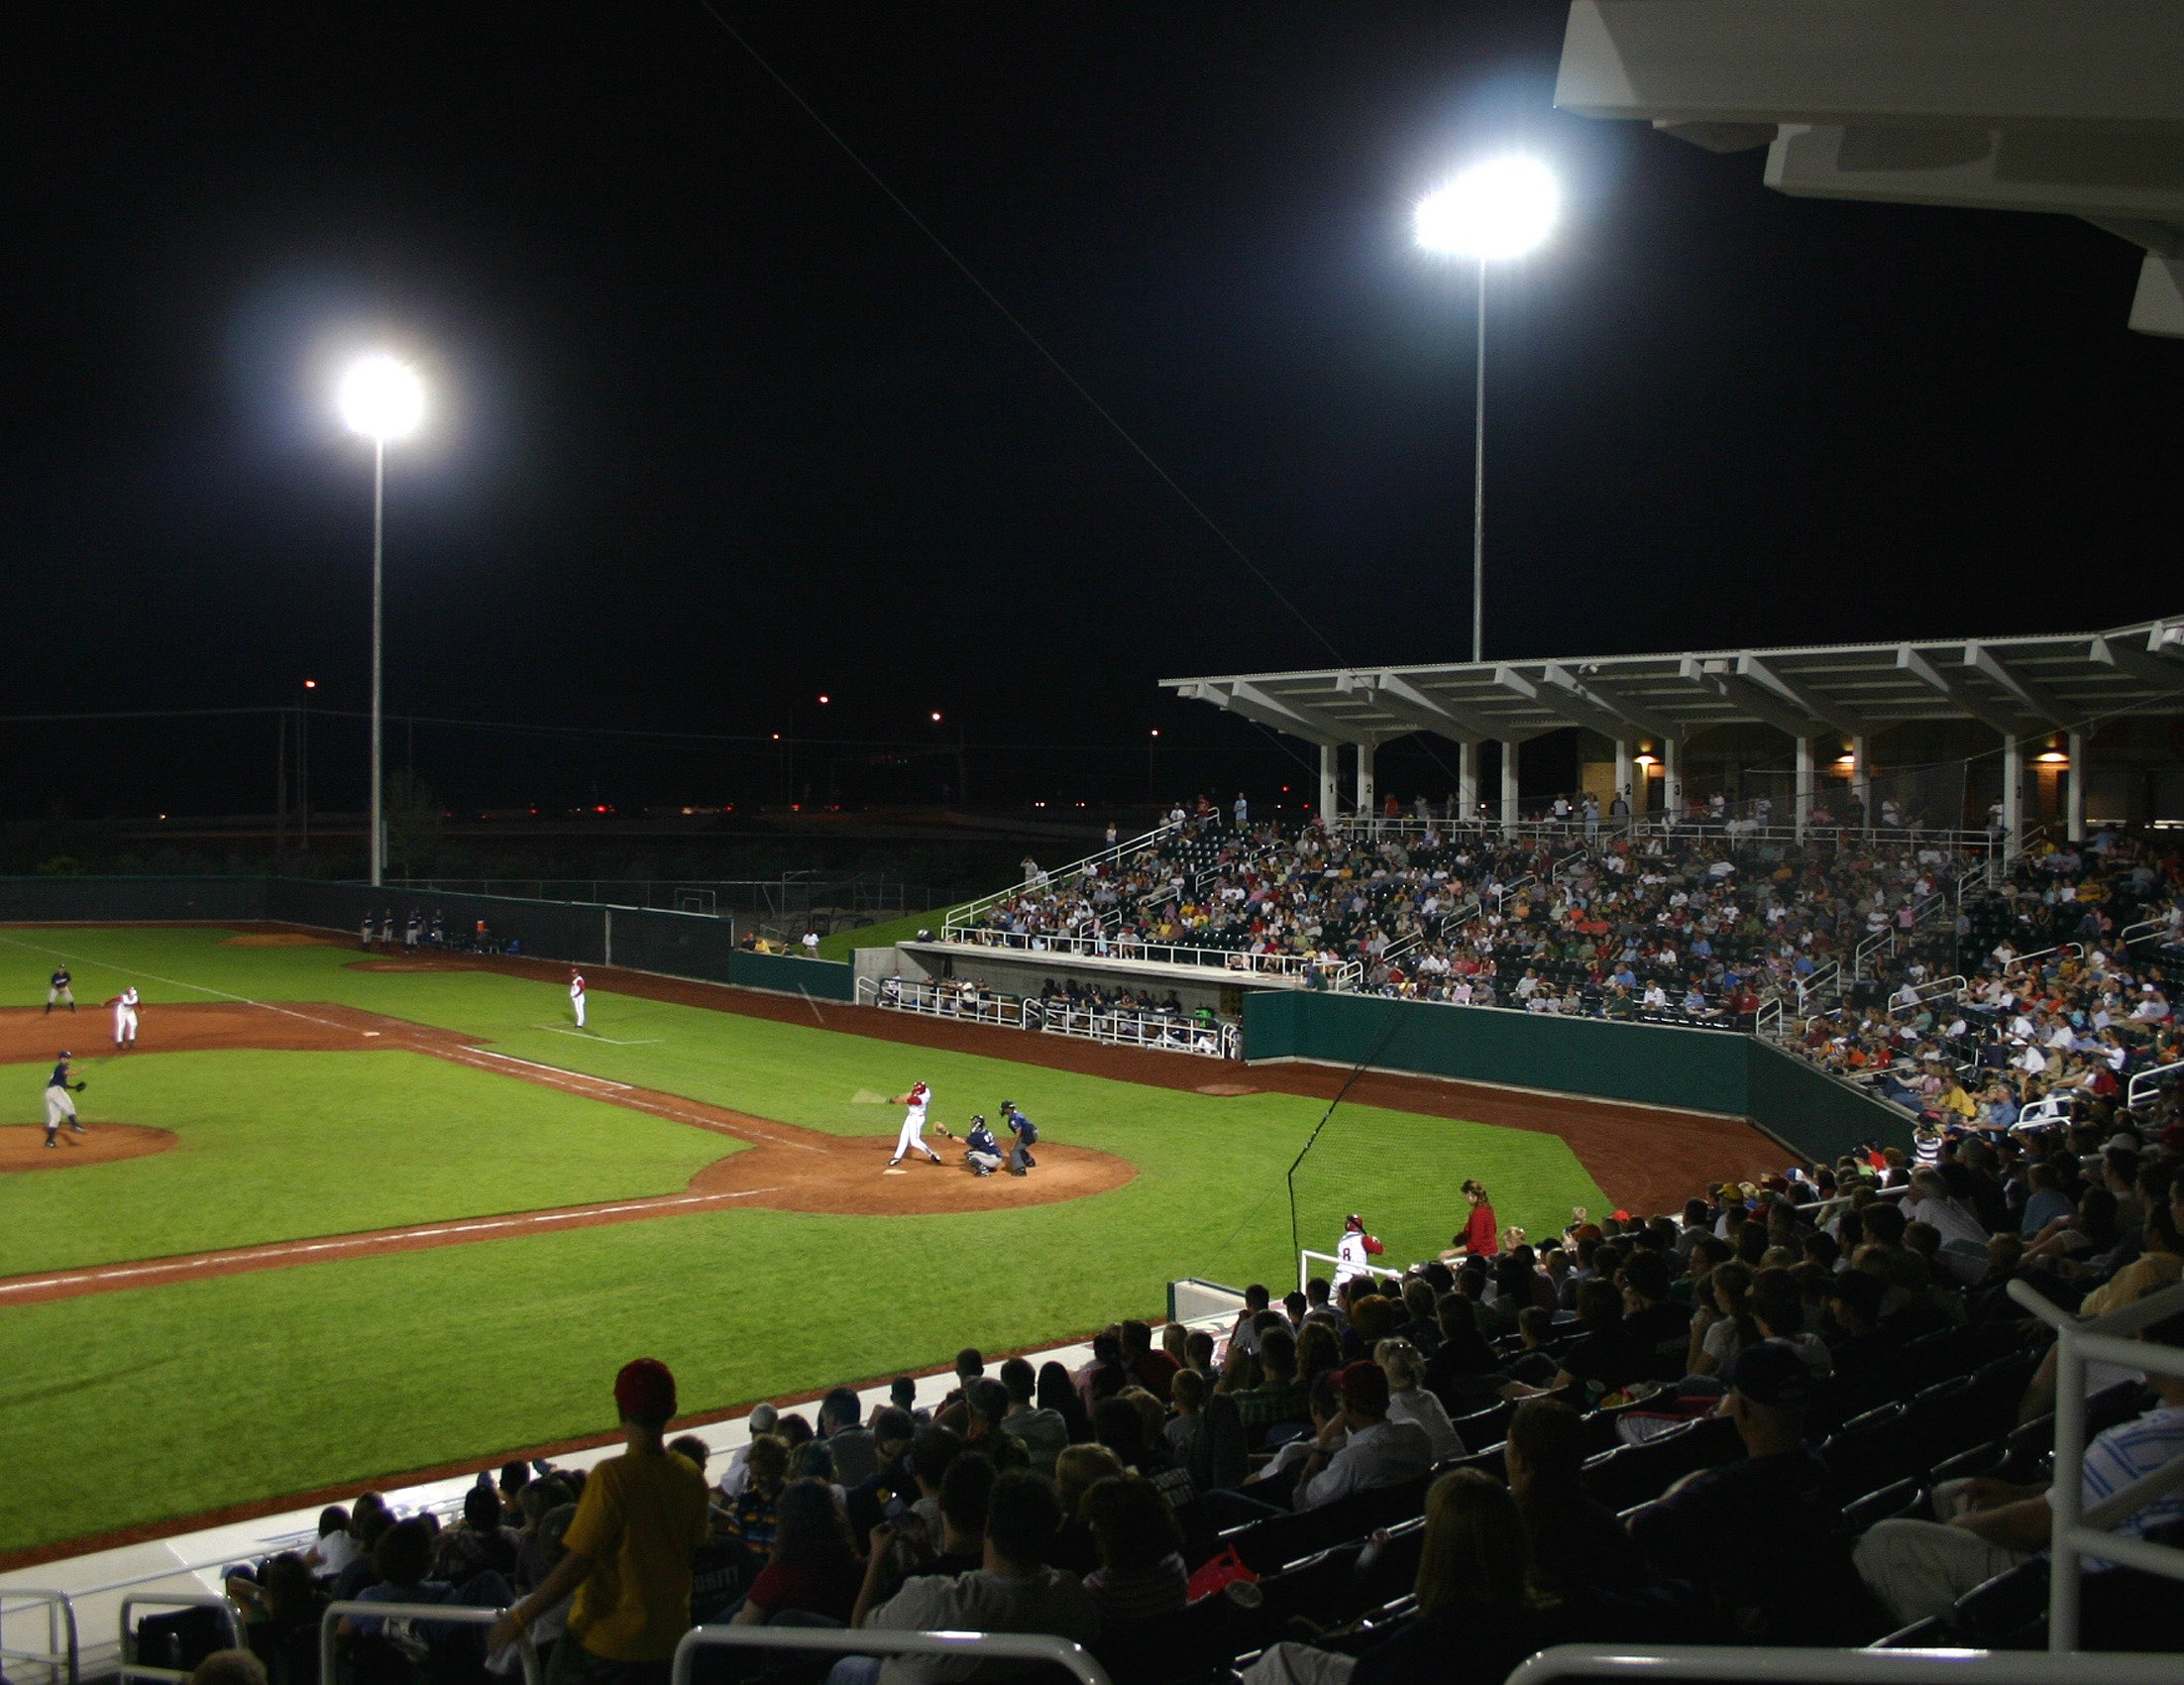 Night game at UCCU Ballpark, architectural design by Elliott Workgroup